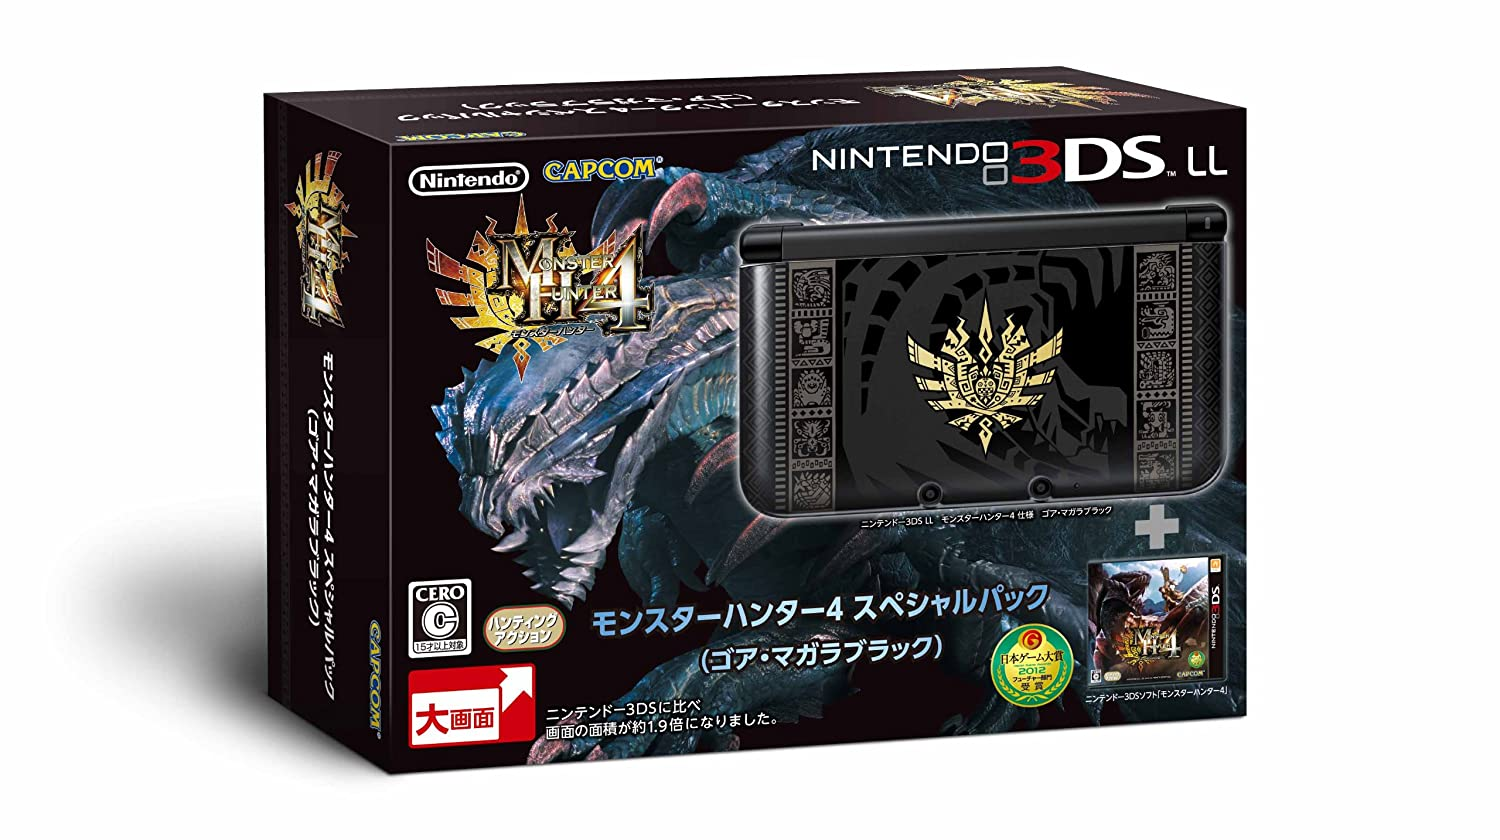 Nintendo 3DS LL Max 44% OFF Monster Hunter 4 Black Pack Credence Special Magala Gore